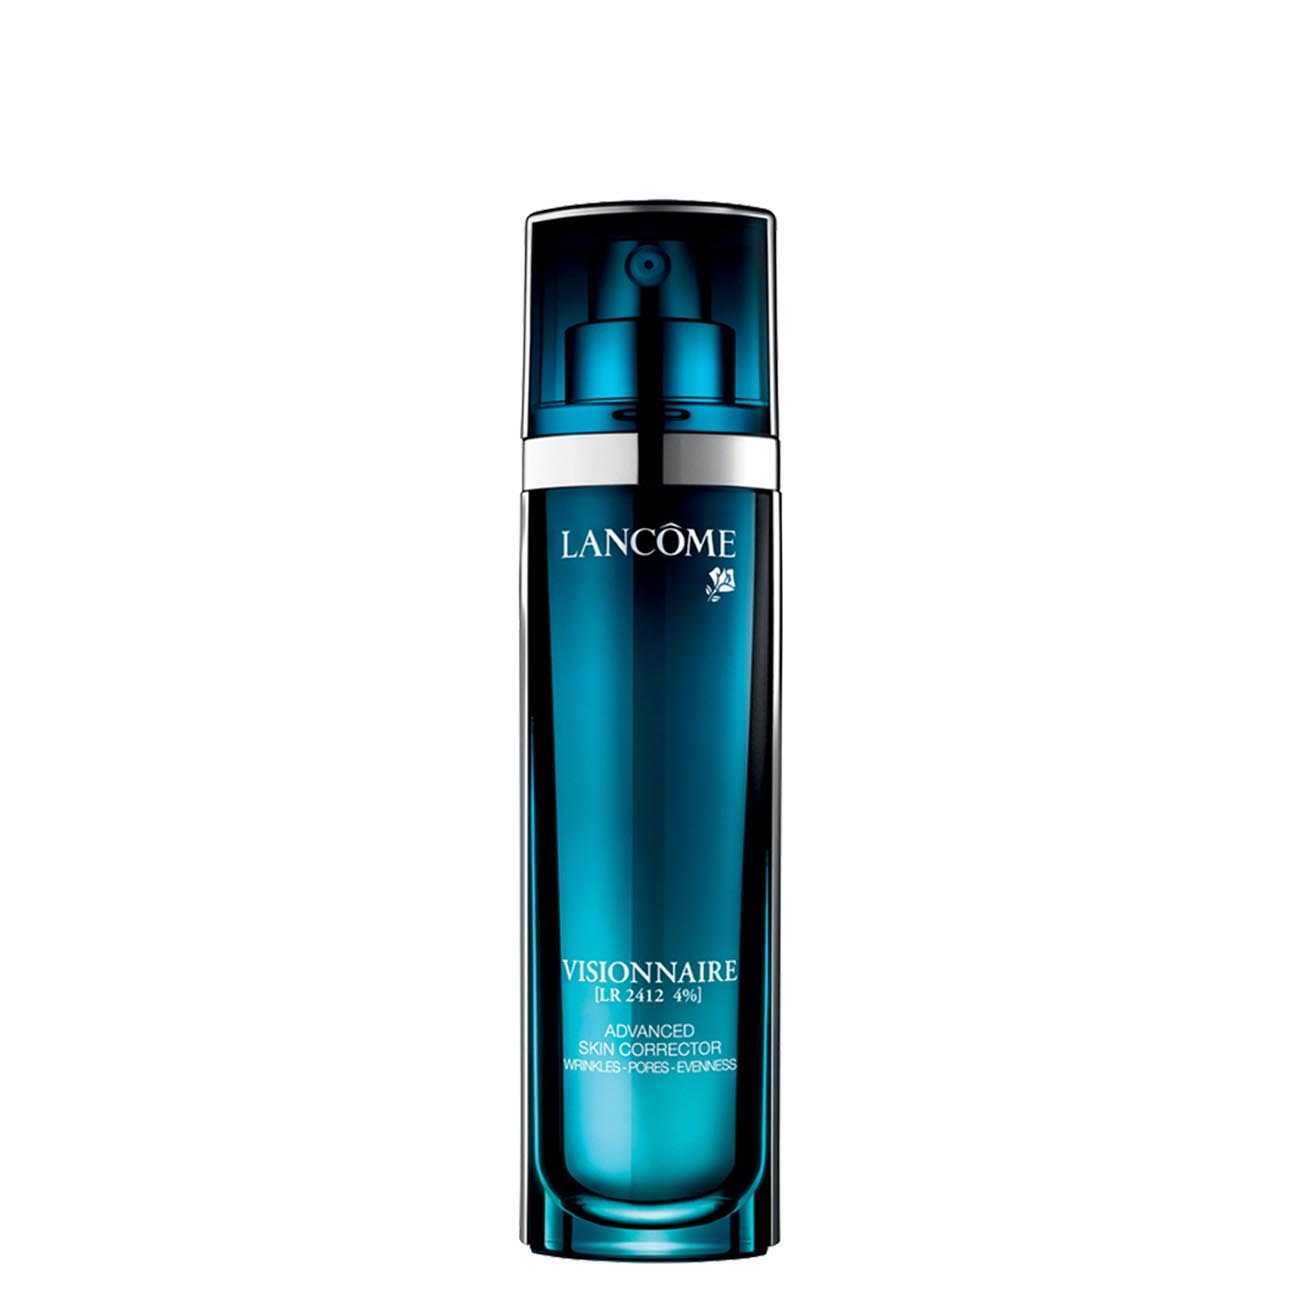 VISIONNAIRE ADVANCED SKIN CORRECTOR 100 ML